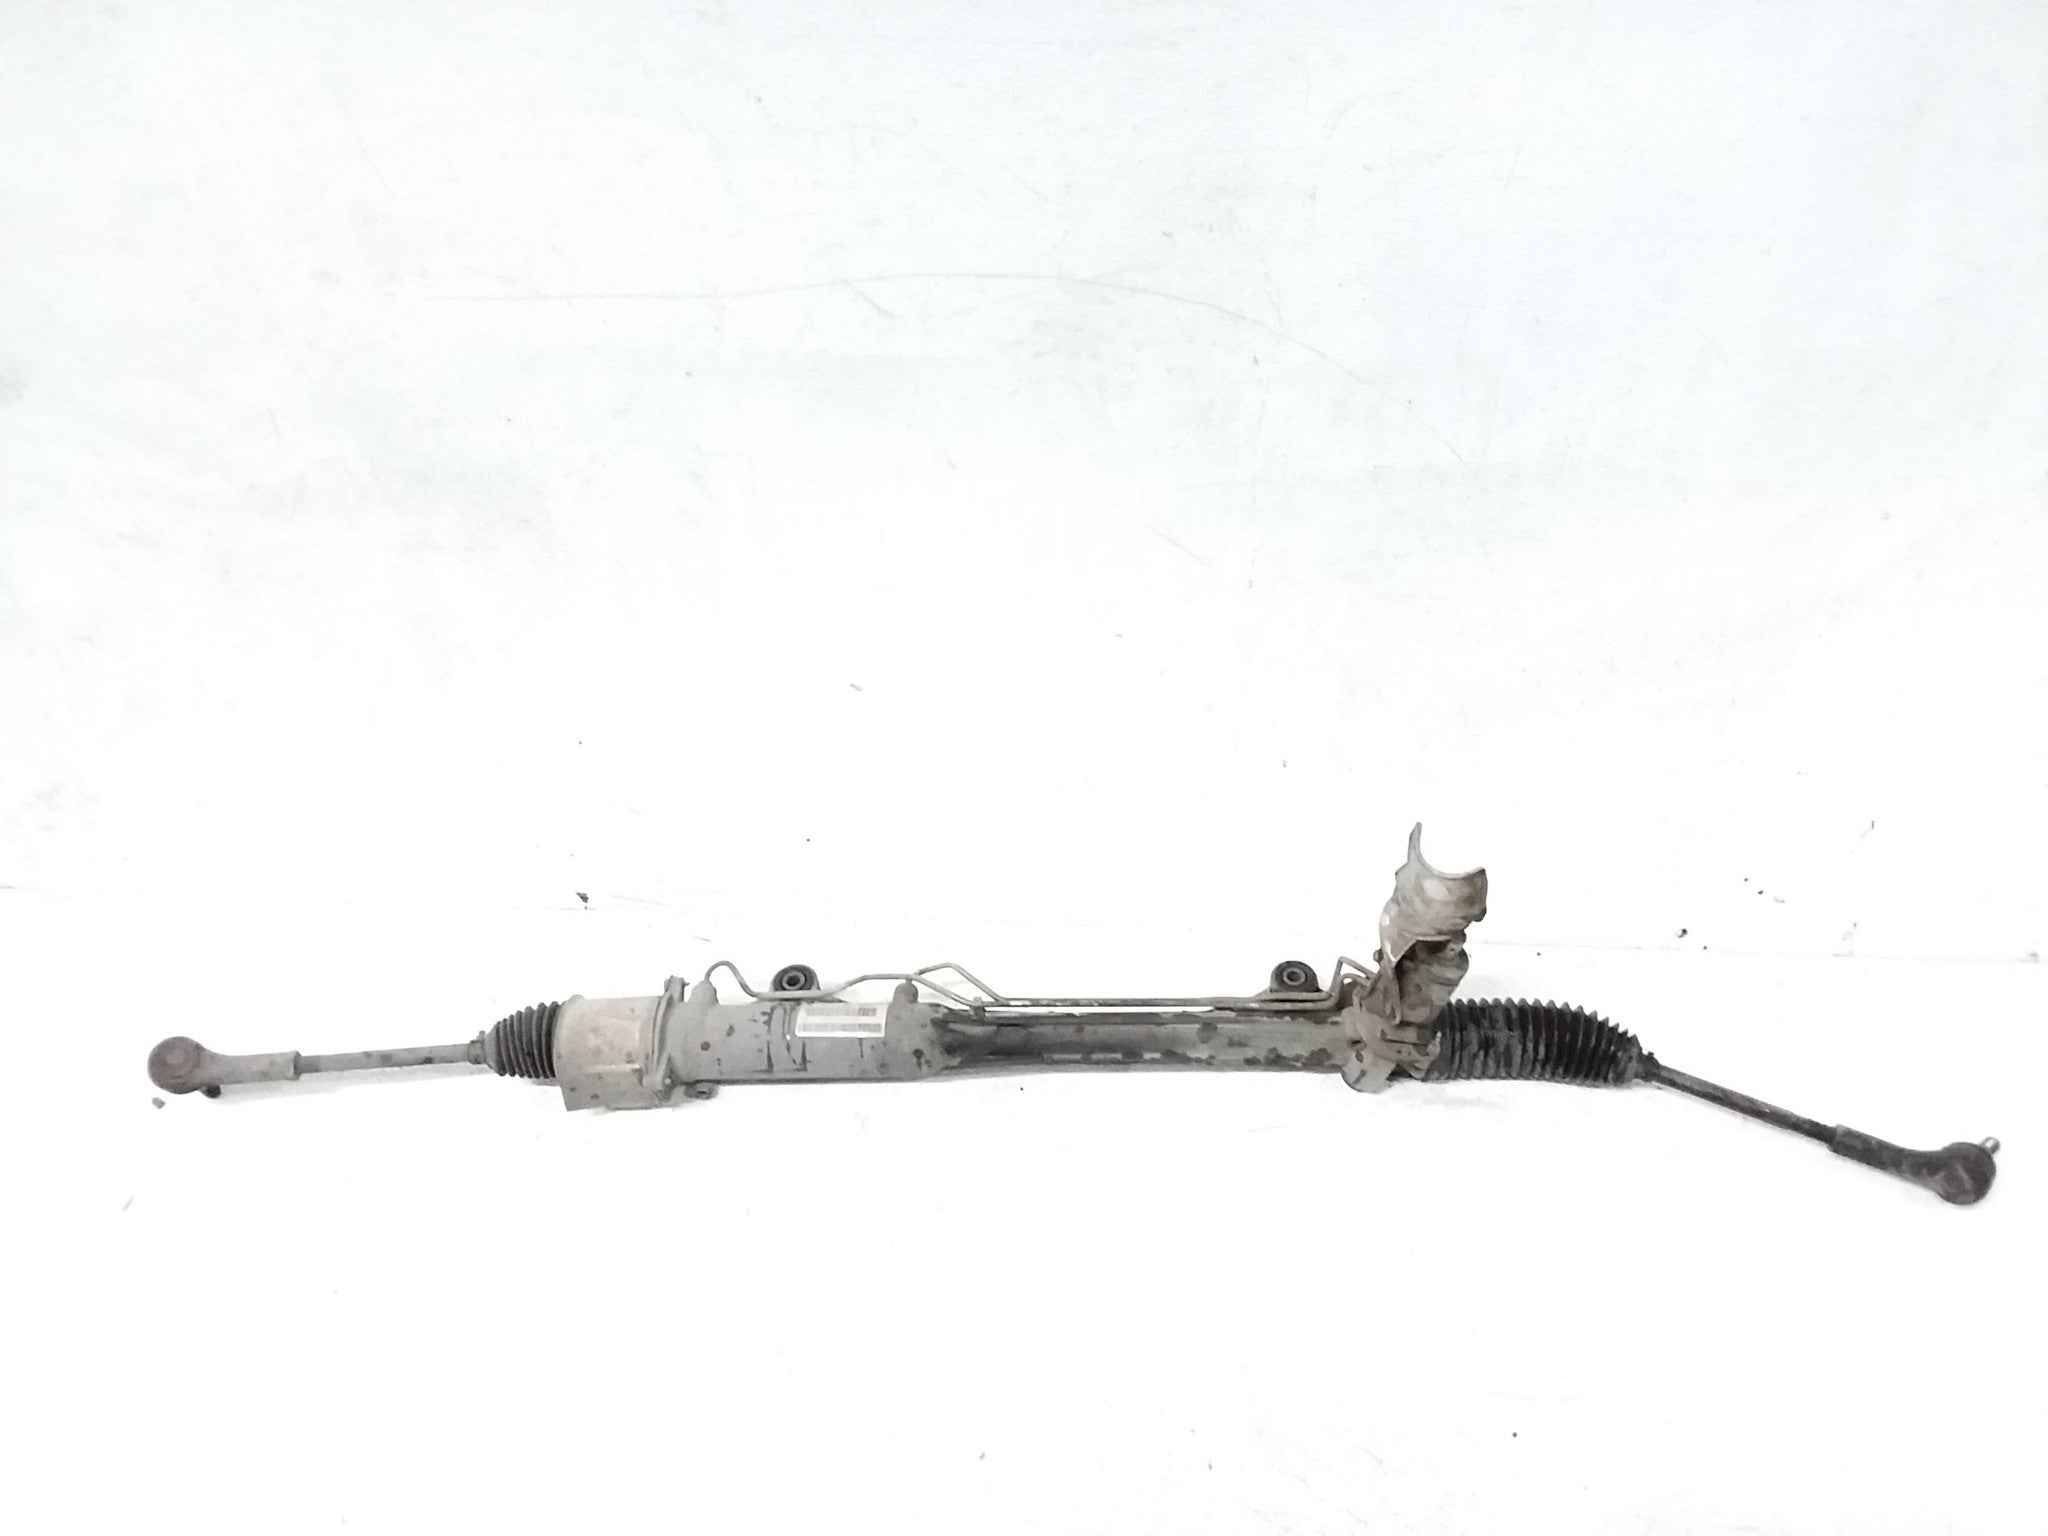 04 05 06 07 08 09 10 VW TOUAREG POWER STEERING RACK AND PINION 7L6422055 H